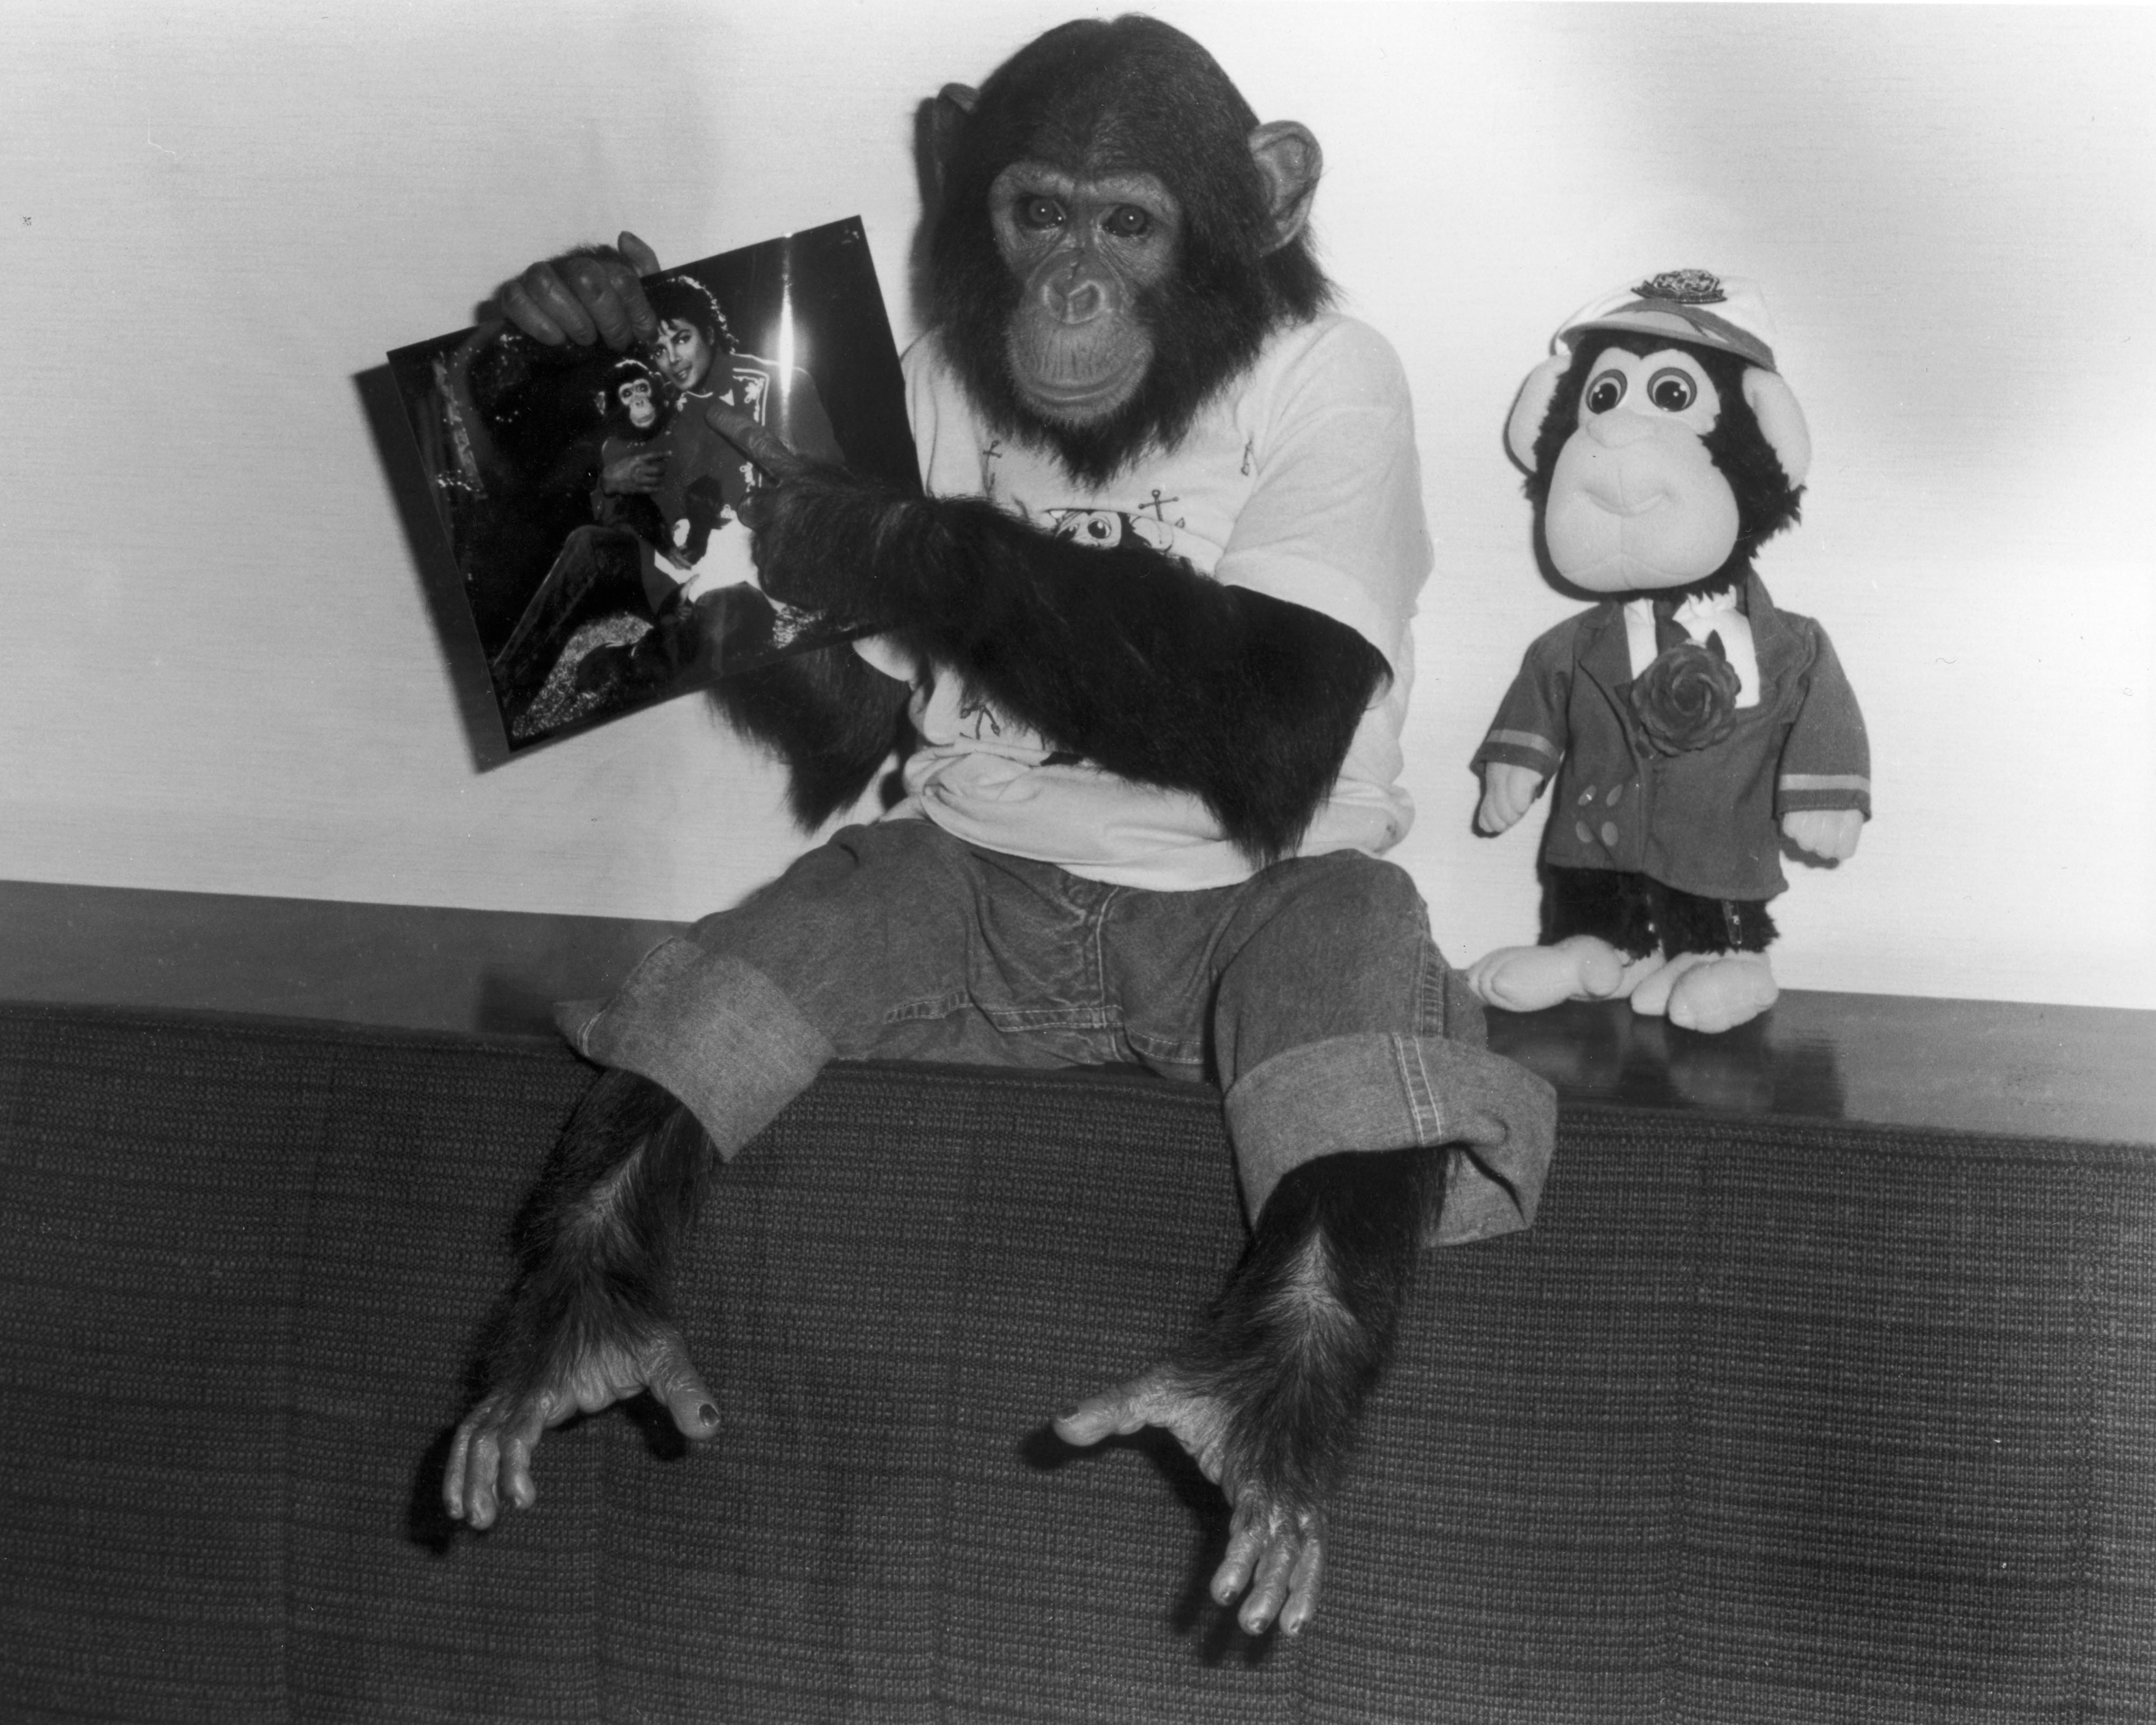 Portrait of Bubbles, a chimpanzee owned by popular entertainer Michael Jackson, dressed in jeans and a t-shirt, holds up a photo of himself and the singer, while a plush Bubbles doll stands beside him, Tokyo, Japan, 1987. (Photo by Hulton Archive/Getty Images)